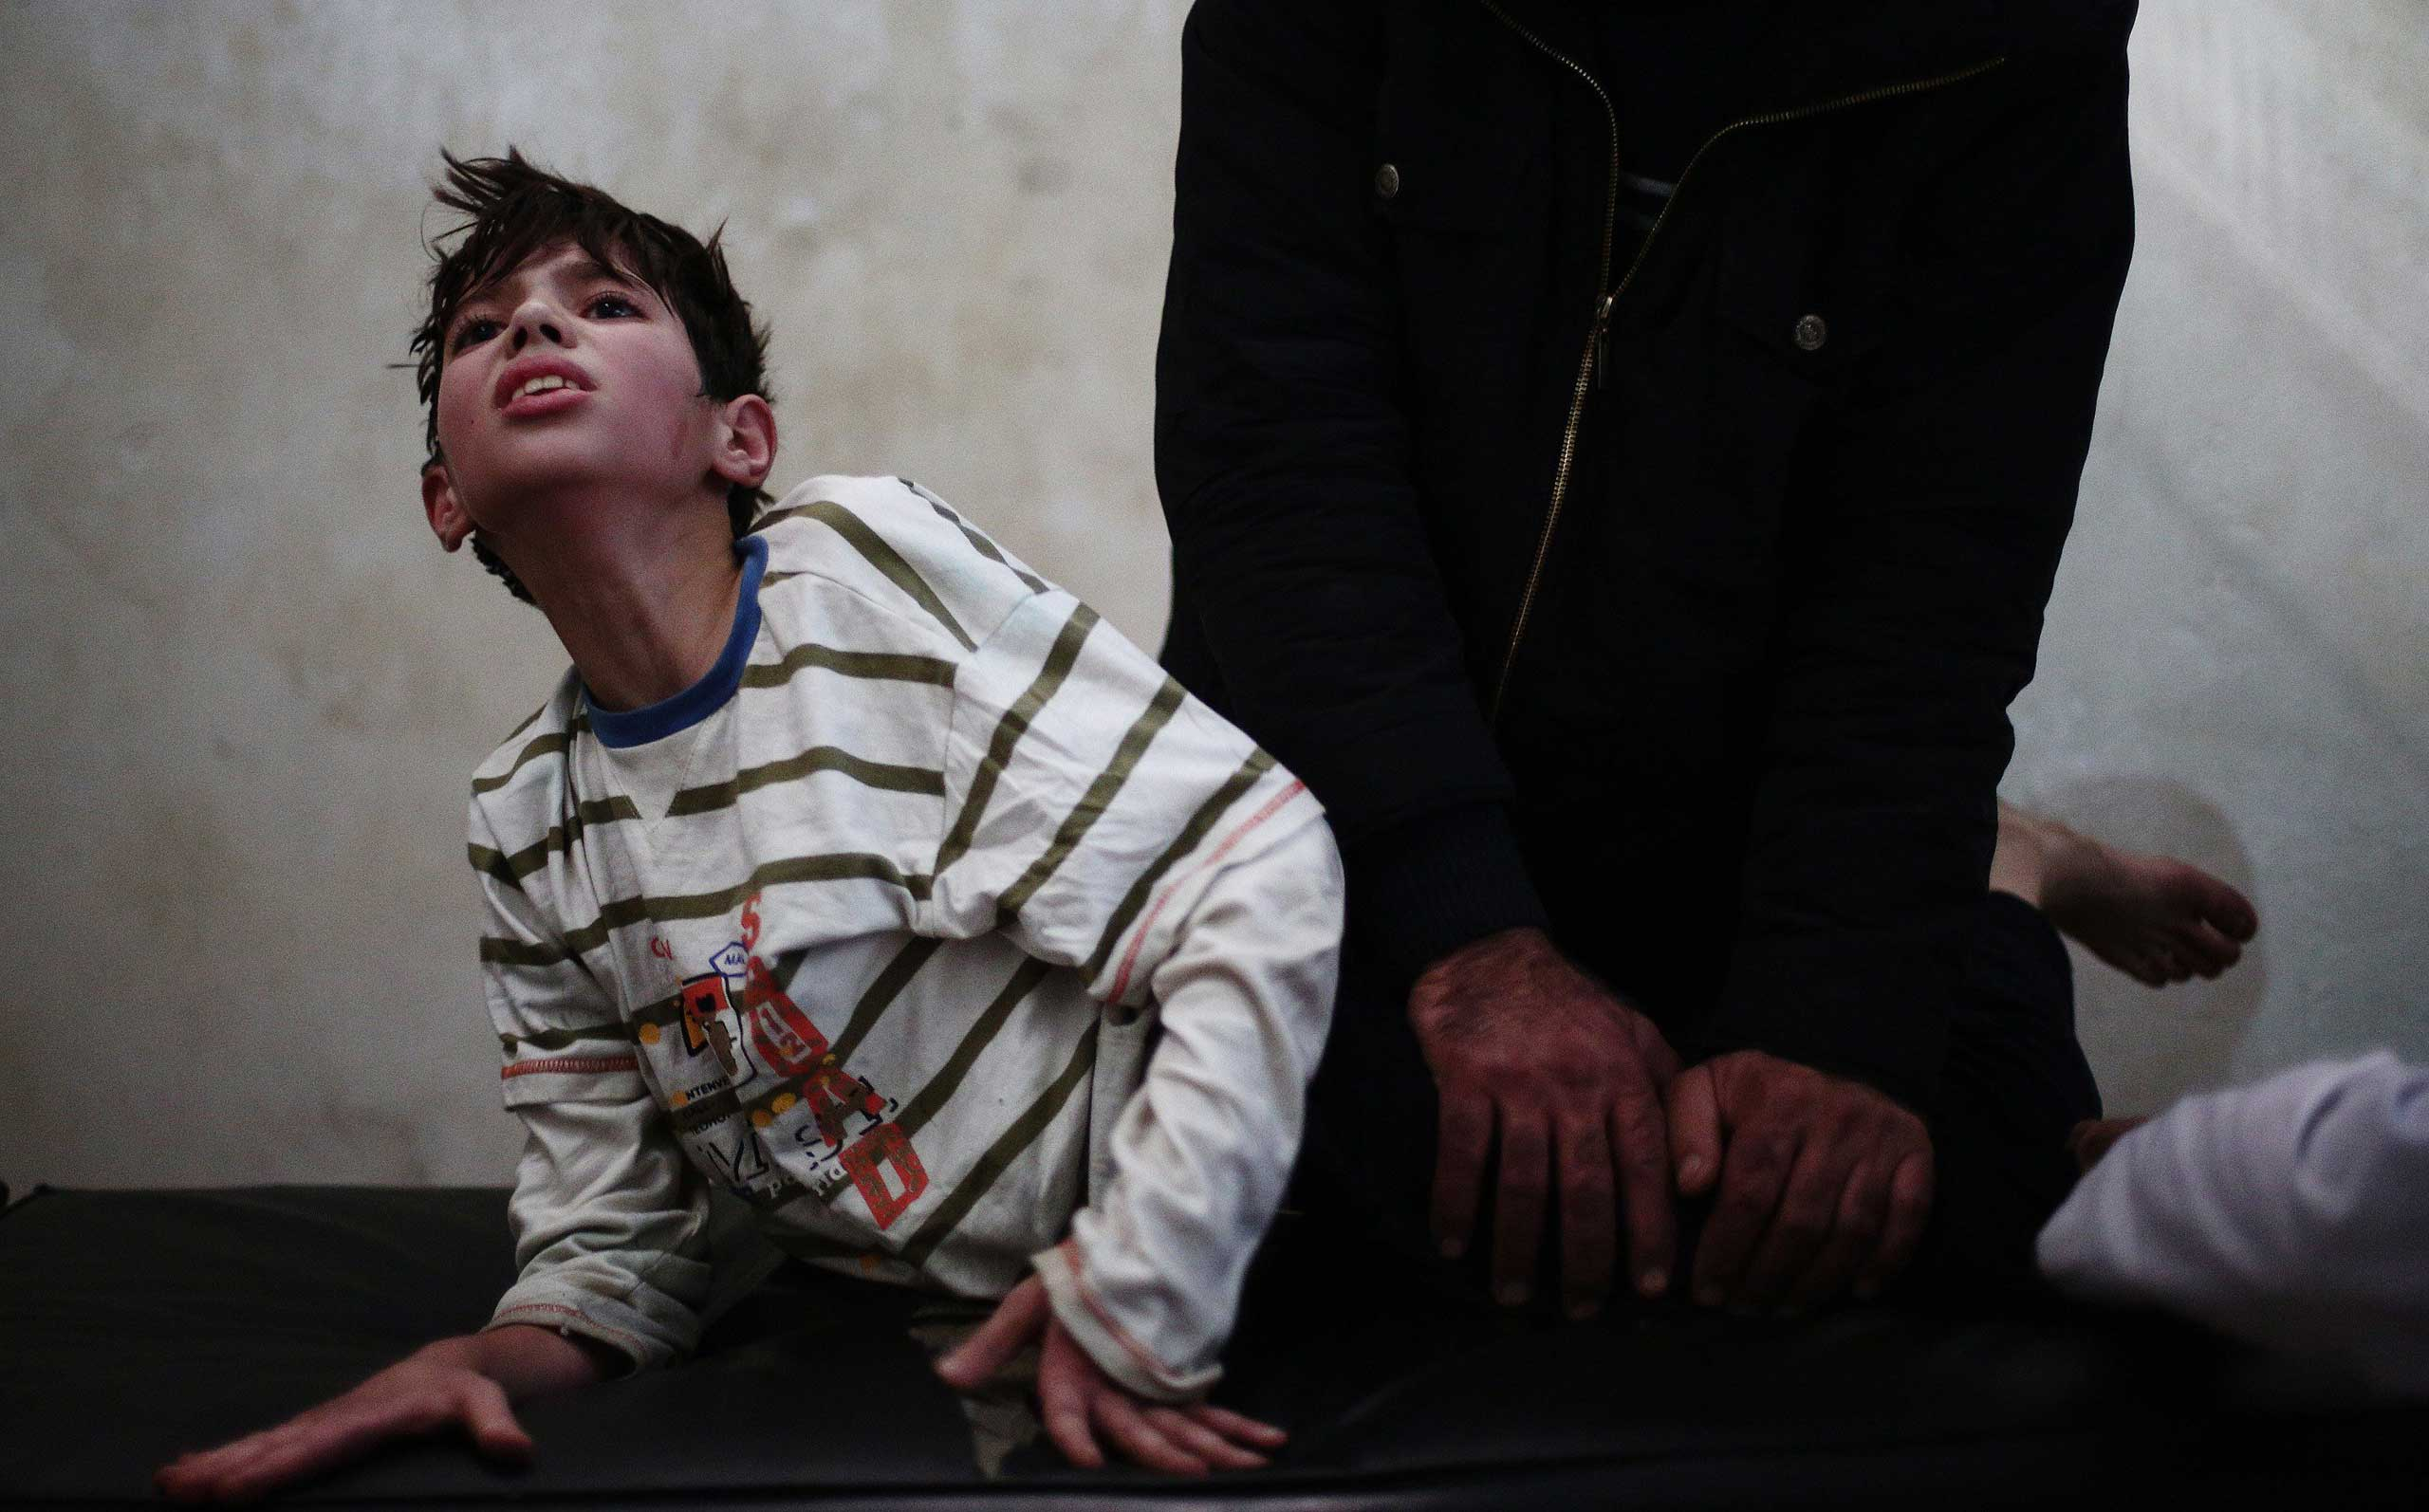 Nov. 6, 2014. A doctor stretches the legs of Syrian youth Mustafa at a physical therapy center  in Eastern al-Ghouta, a rebel-held region outside the capital Damascus. Mustafa, 13, had his legs' tendons cut after he was injured in an airstrike four months before.